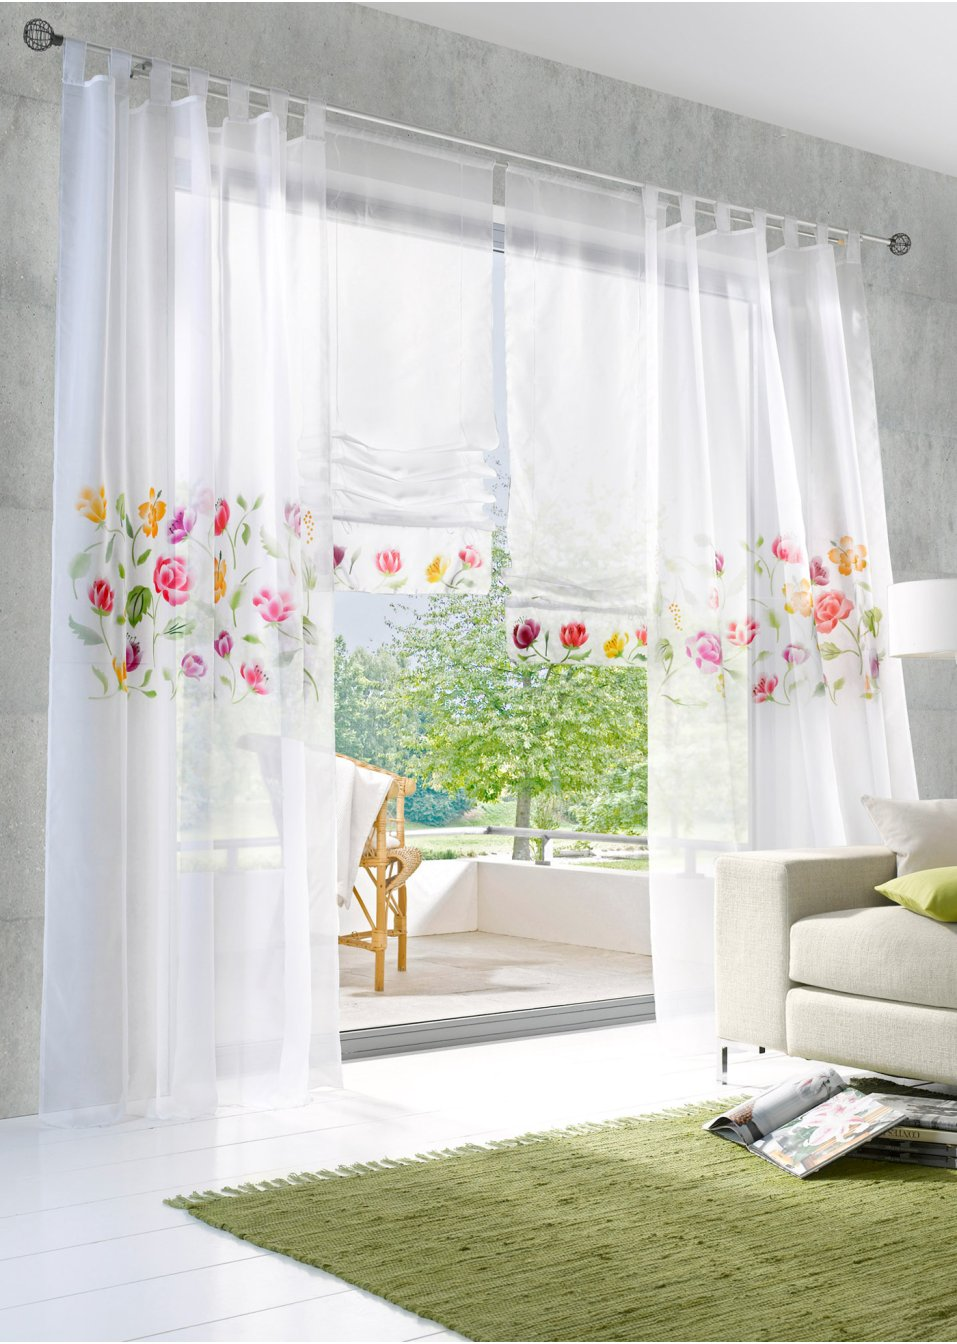 Rustic Curtains For Living Room Us 28 5 5 Off White Rustic Curtain For Living Room Window Curtains Tulle For Bedroom Living Room Sheer Cortinas For Window In Curtains From Home